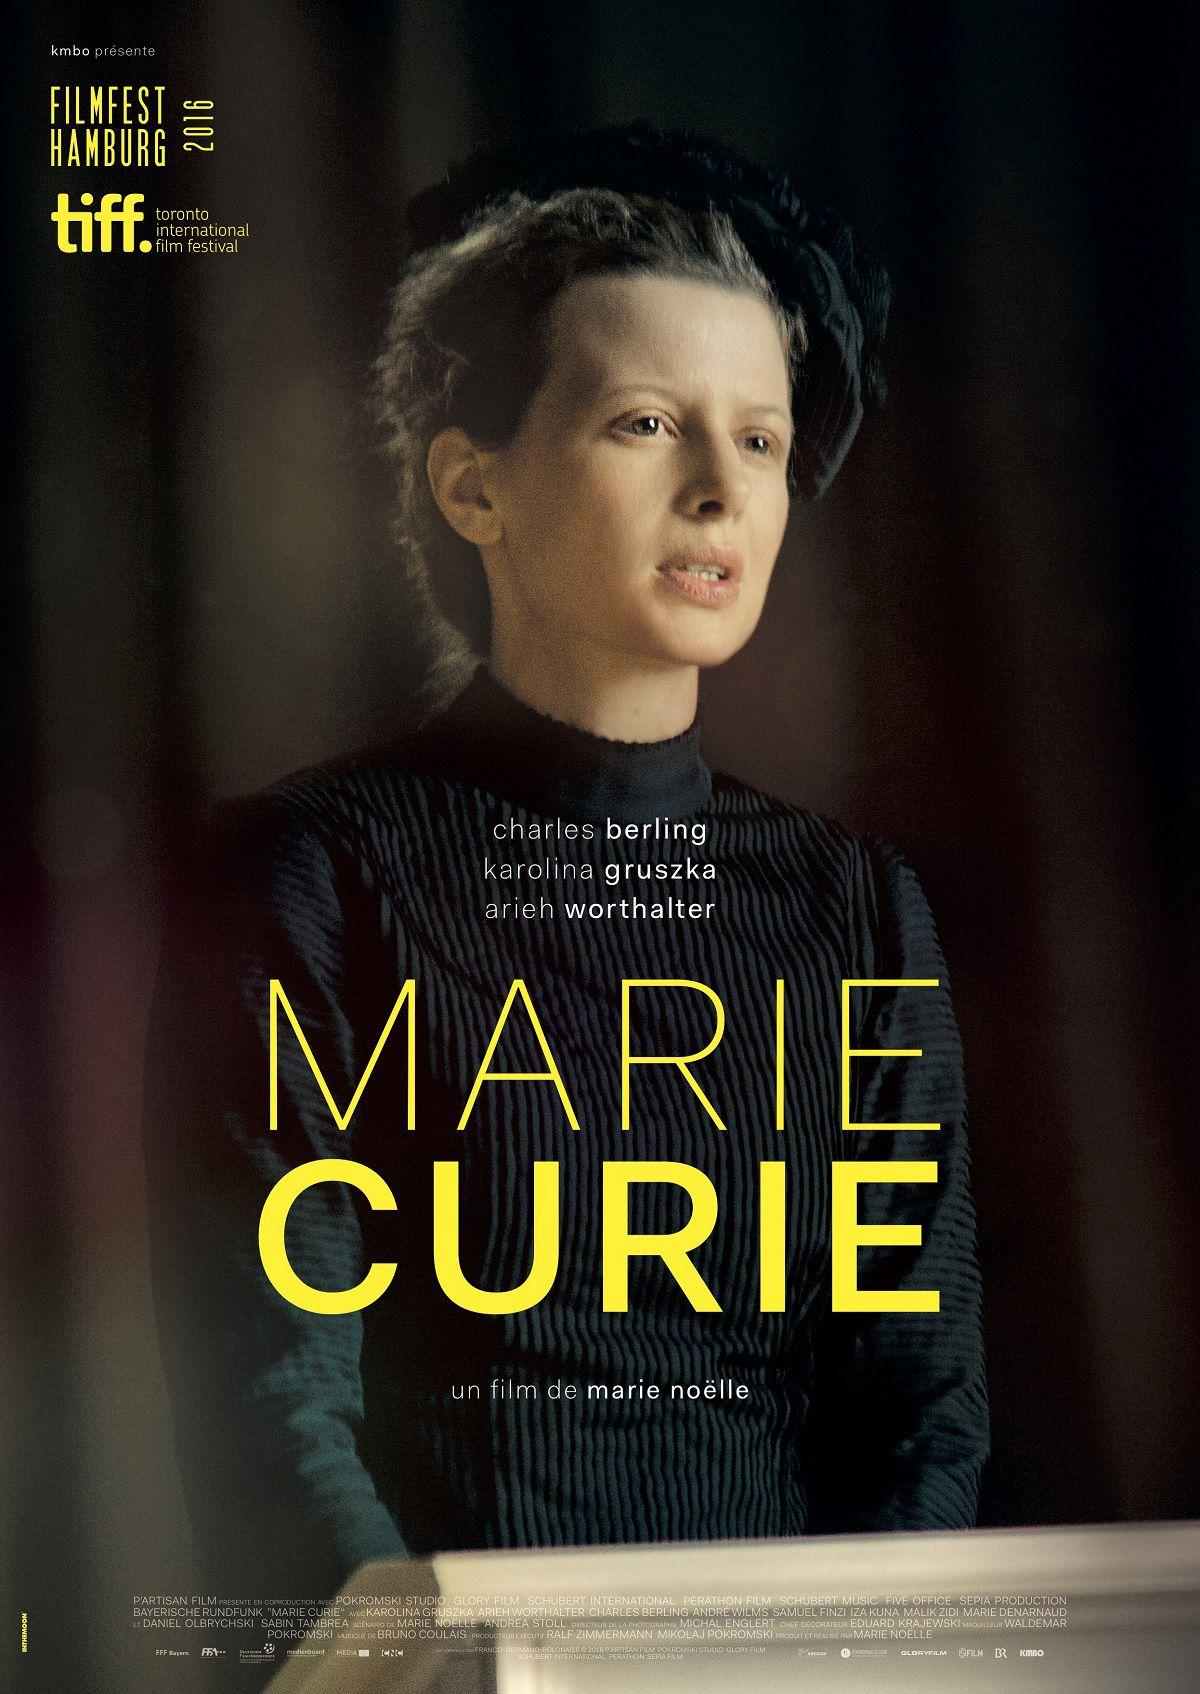 marie curie biopic film cinema artistik rezo paris